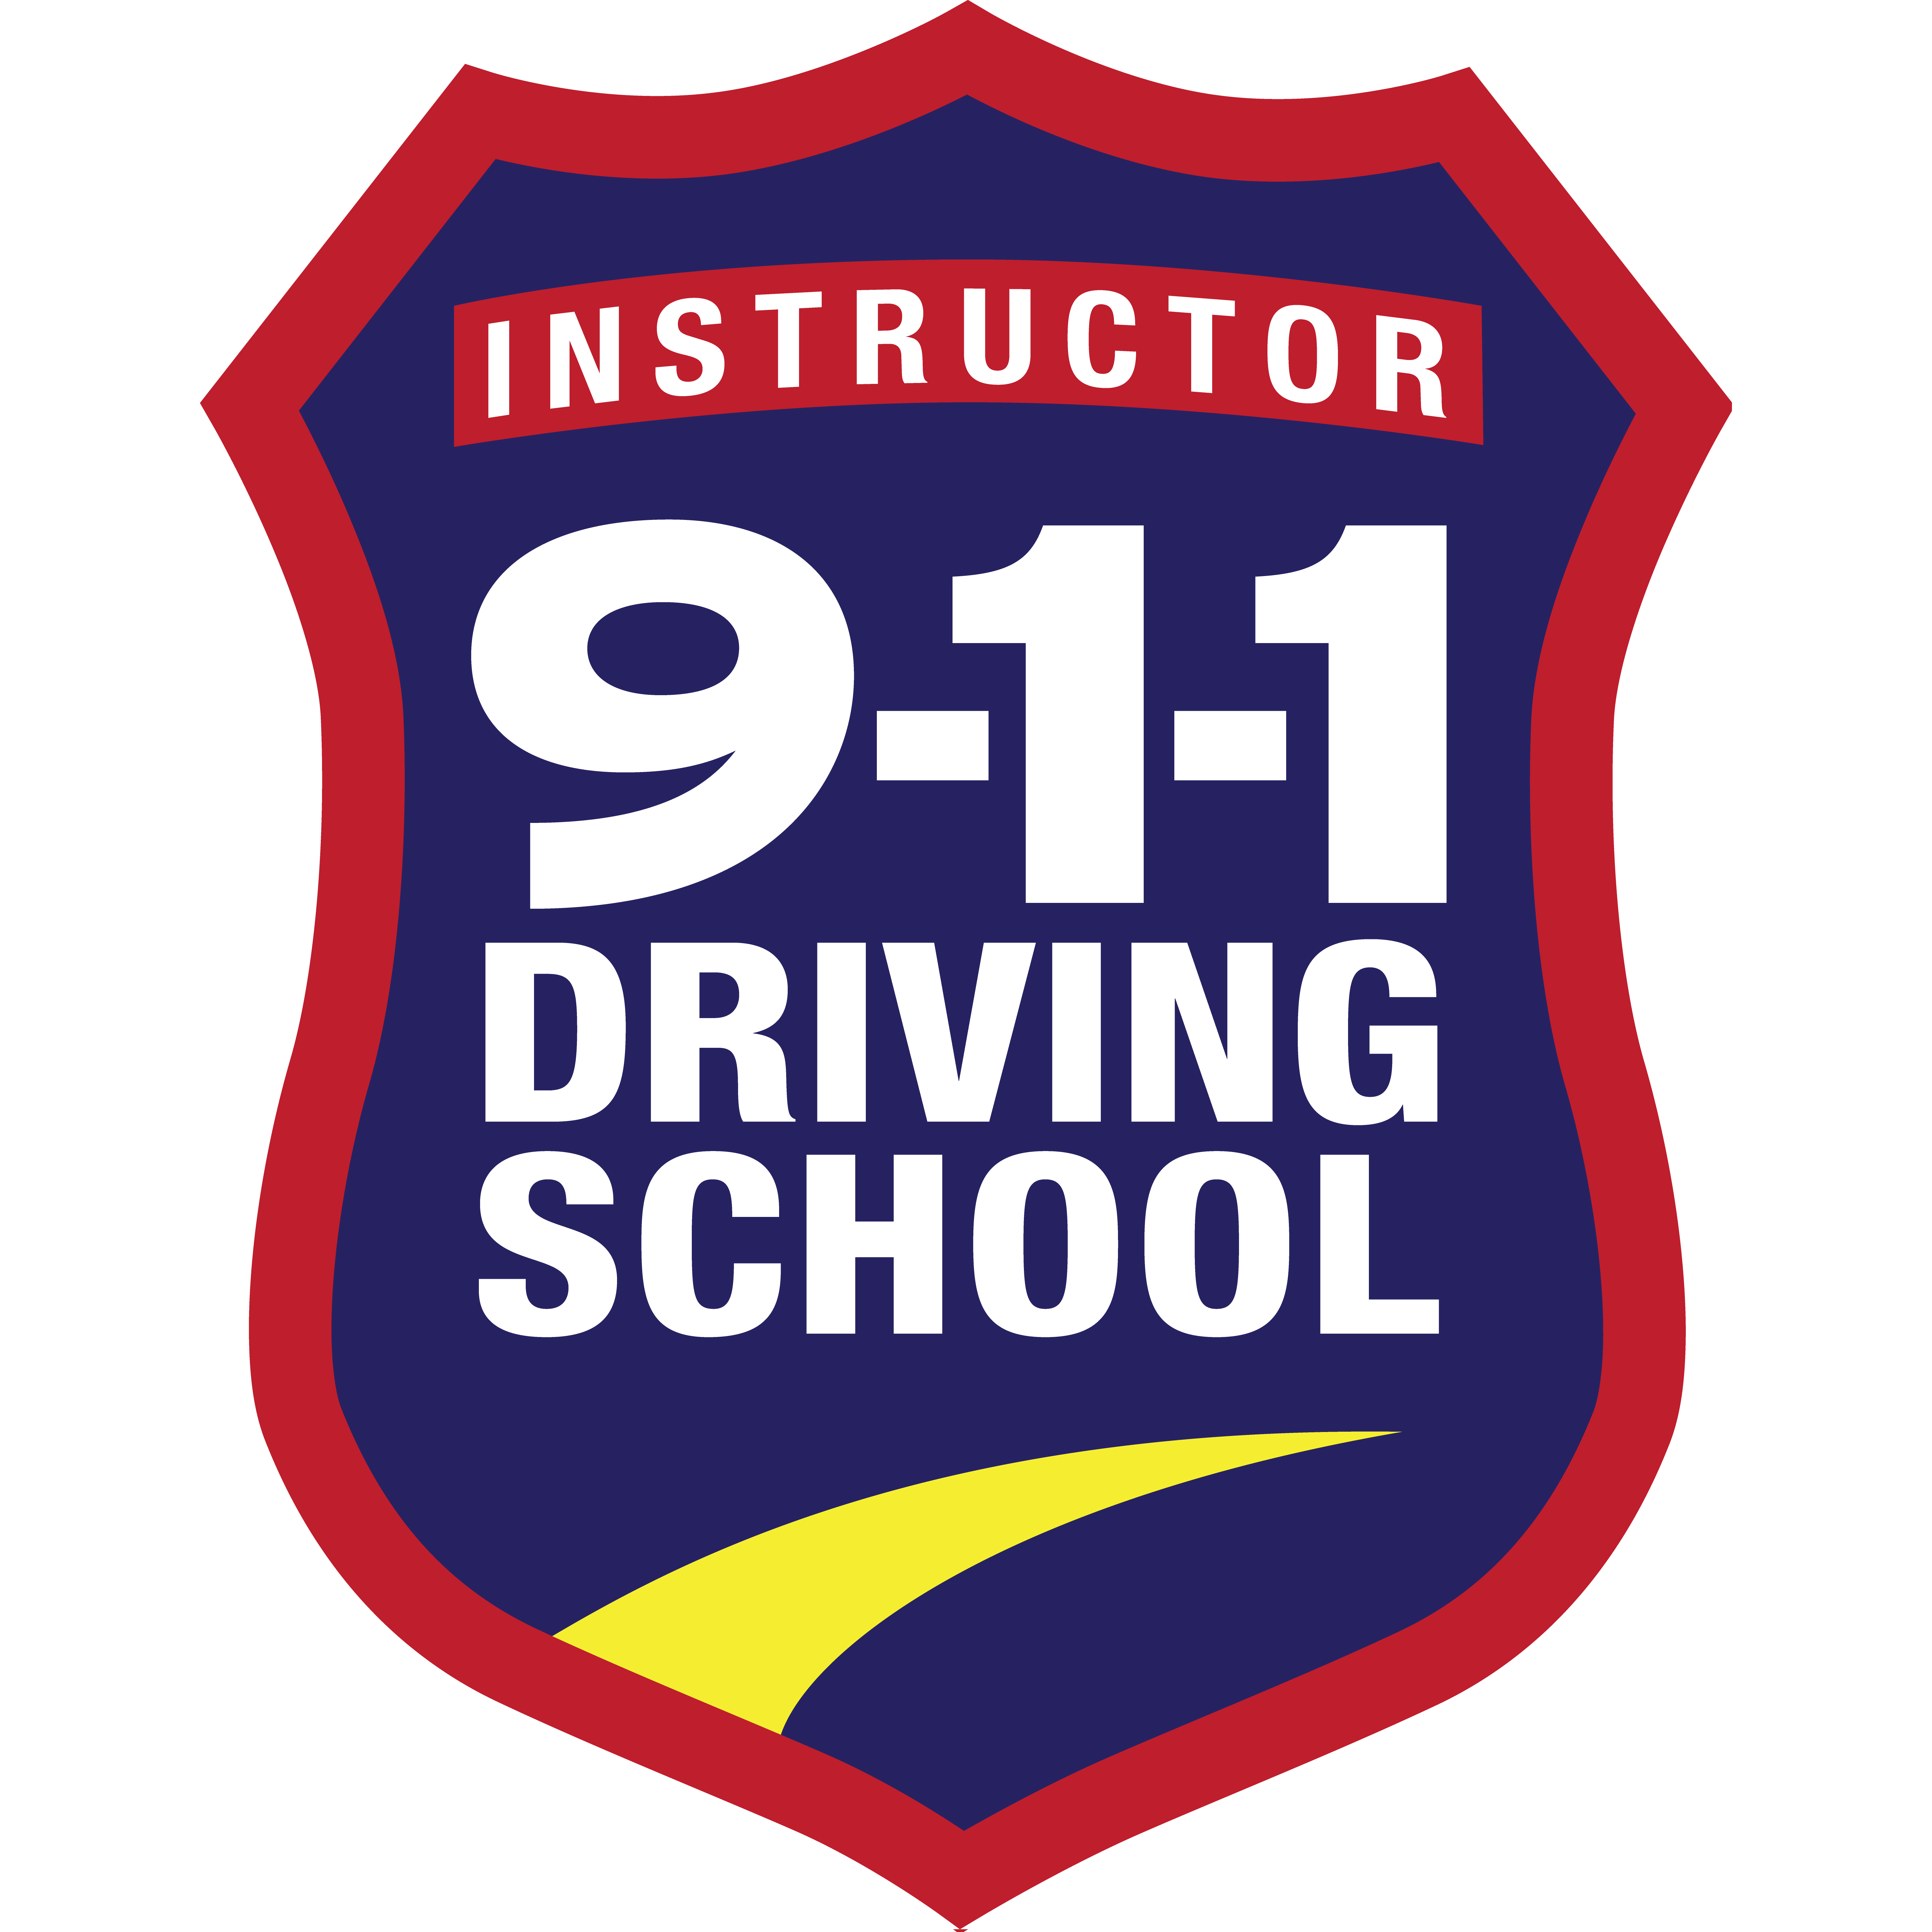 image of the 911 Driving School